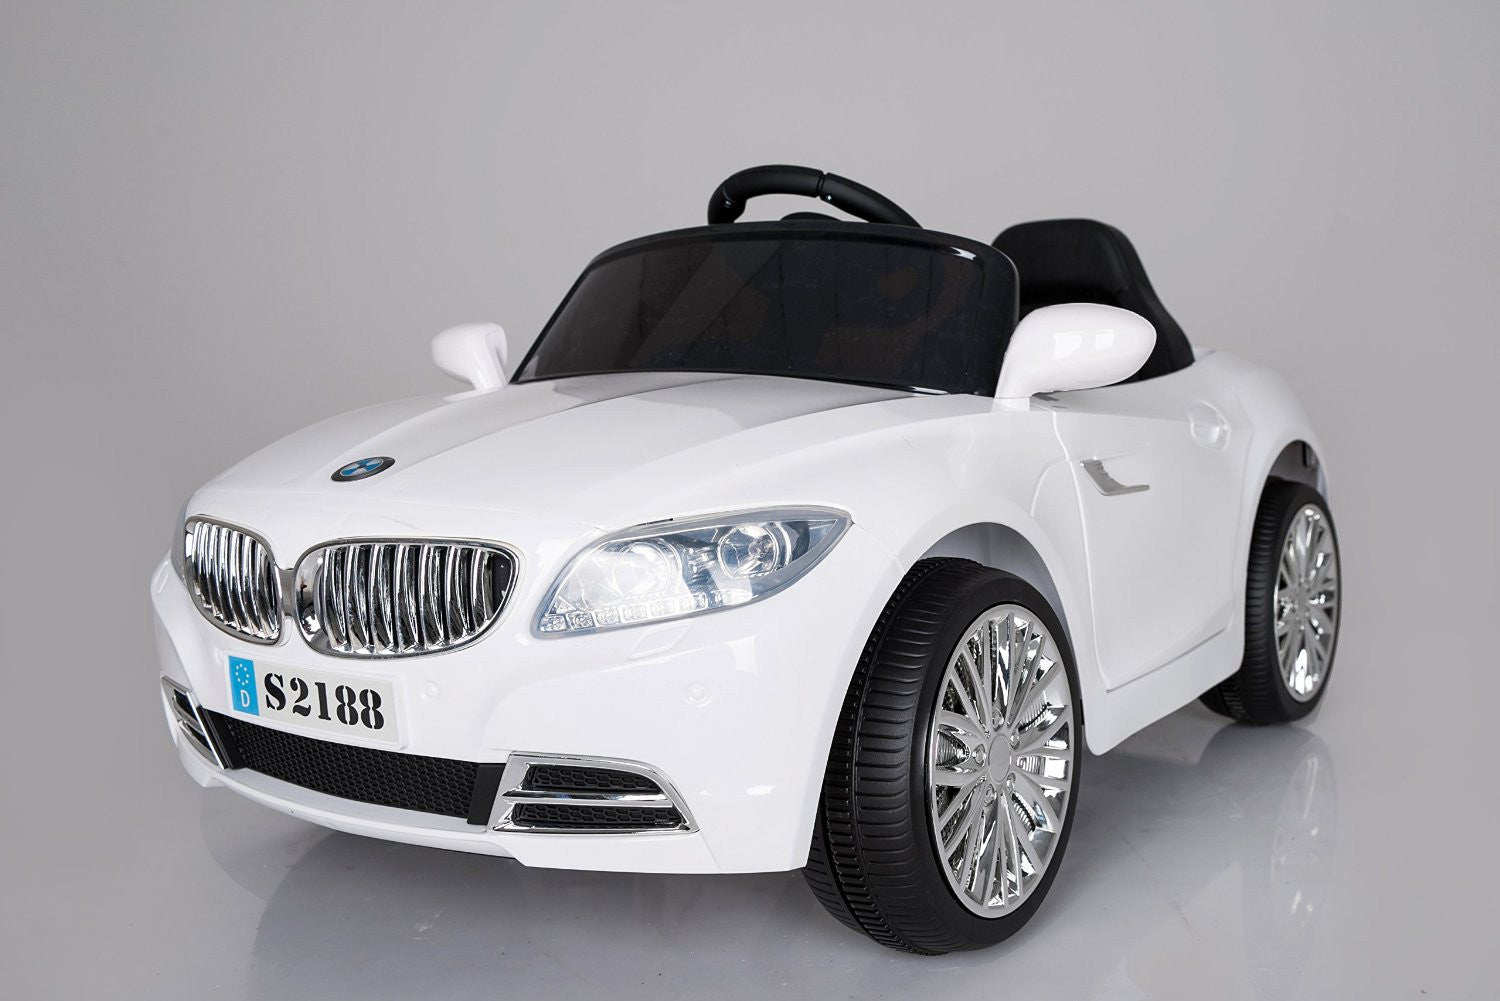 Ricco S2188 White Kids Coupe Bmw Style Ride On Car With Led Lights